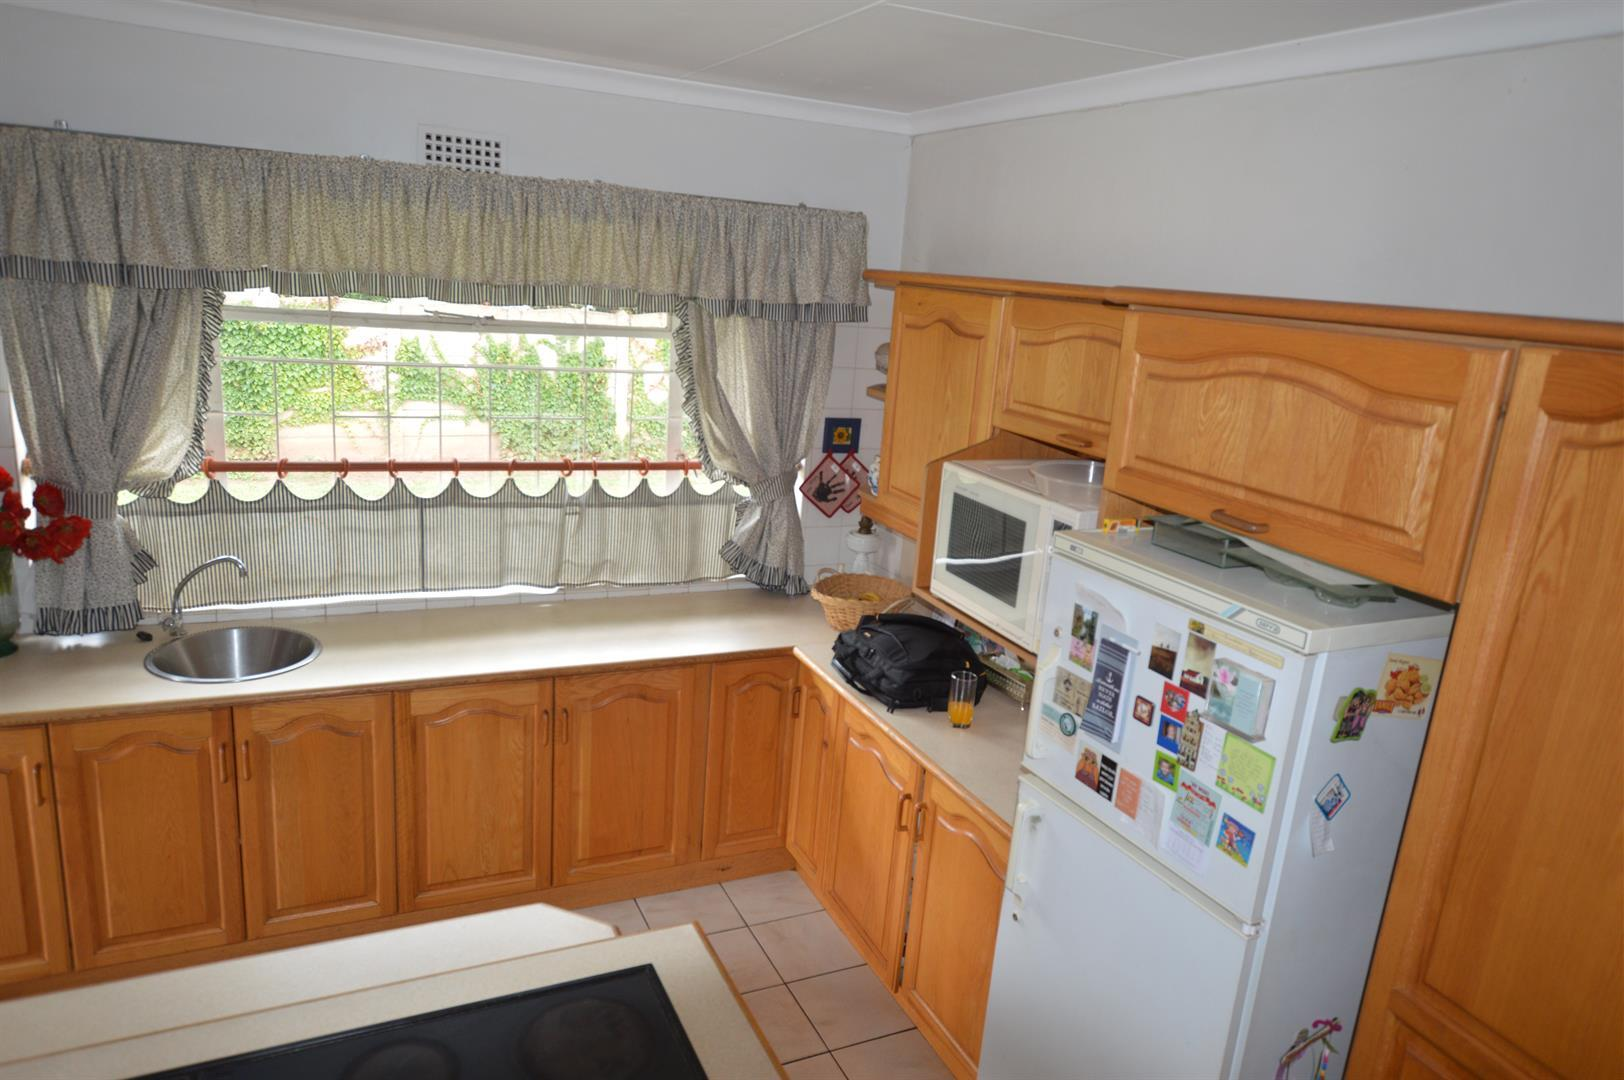 Vanderbijlpark Sw 5 for sale property. Ref No: 13443705. Picture no 7